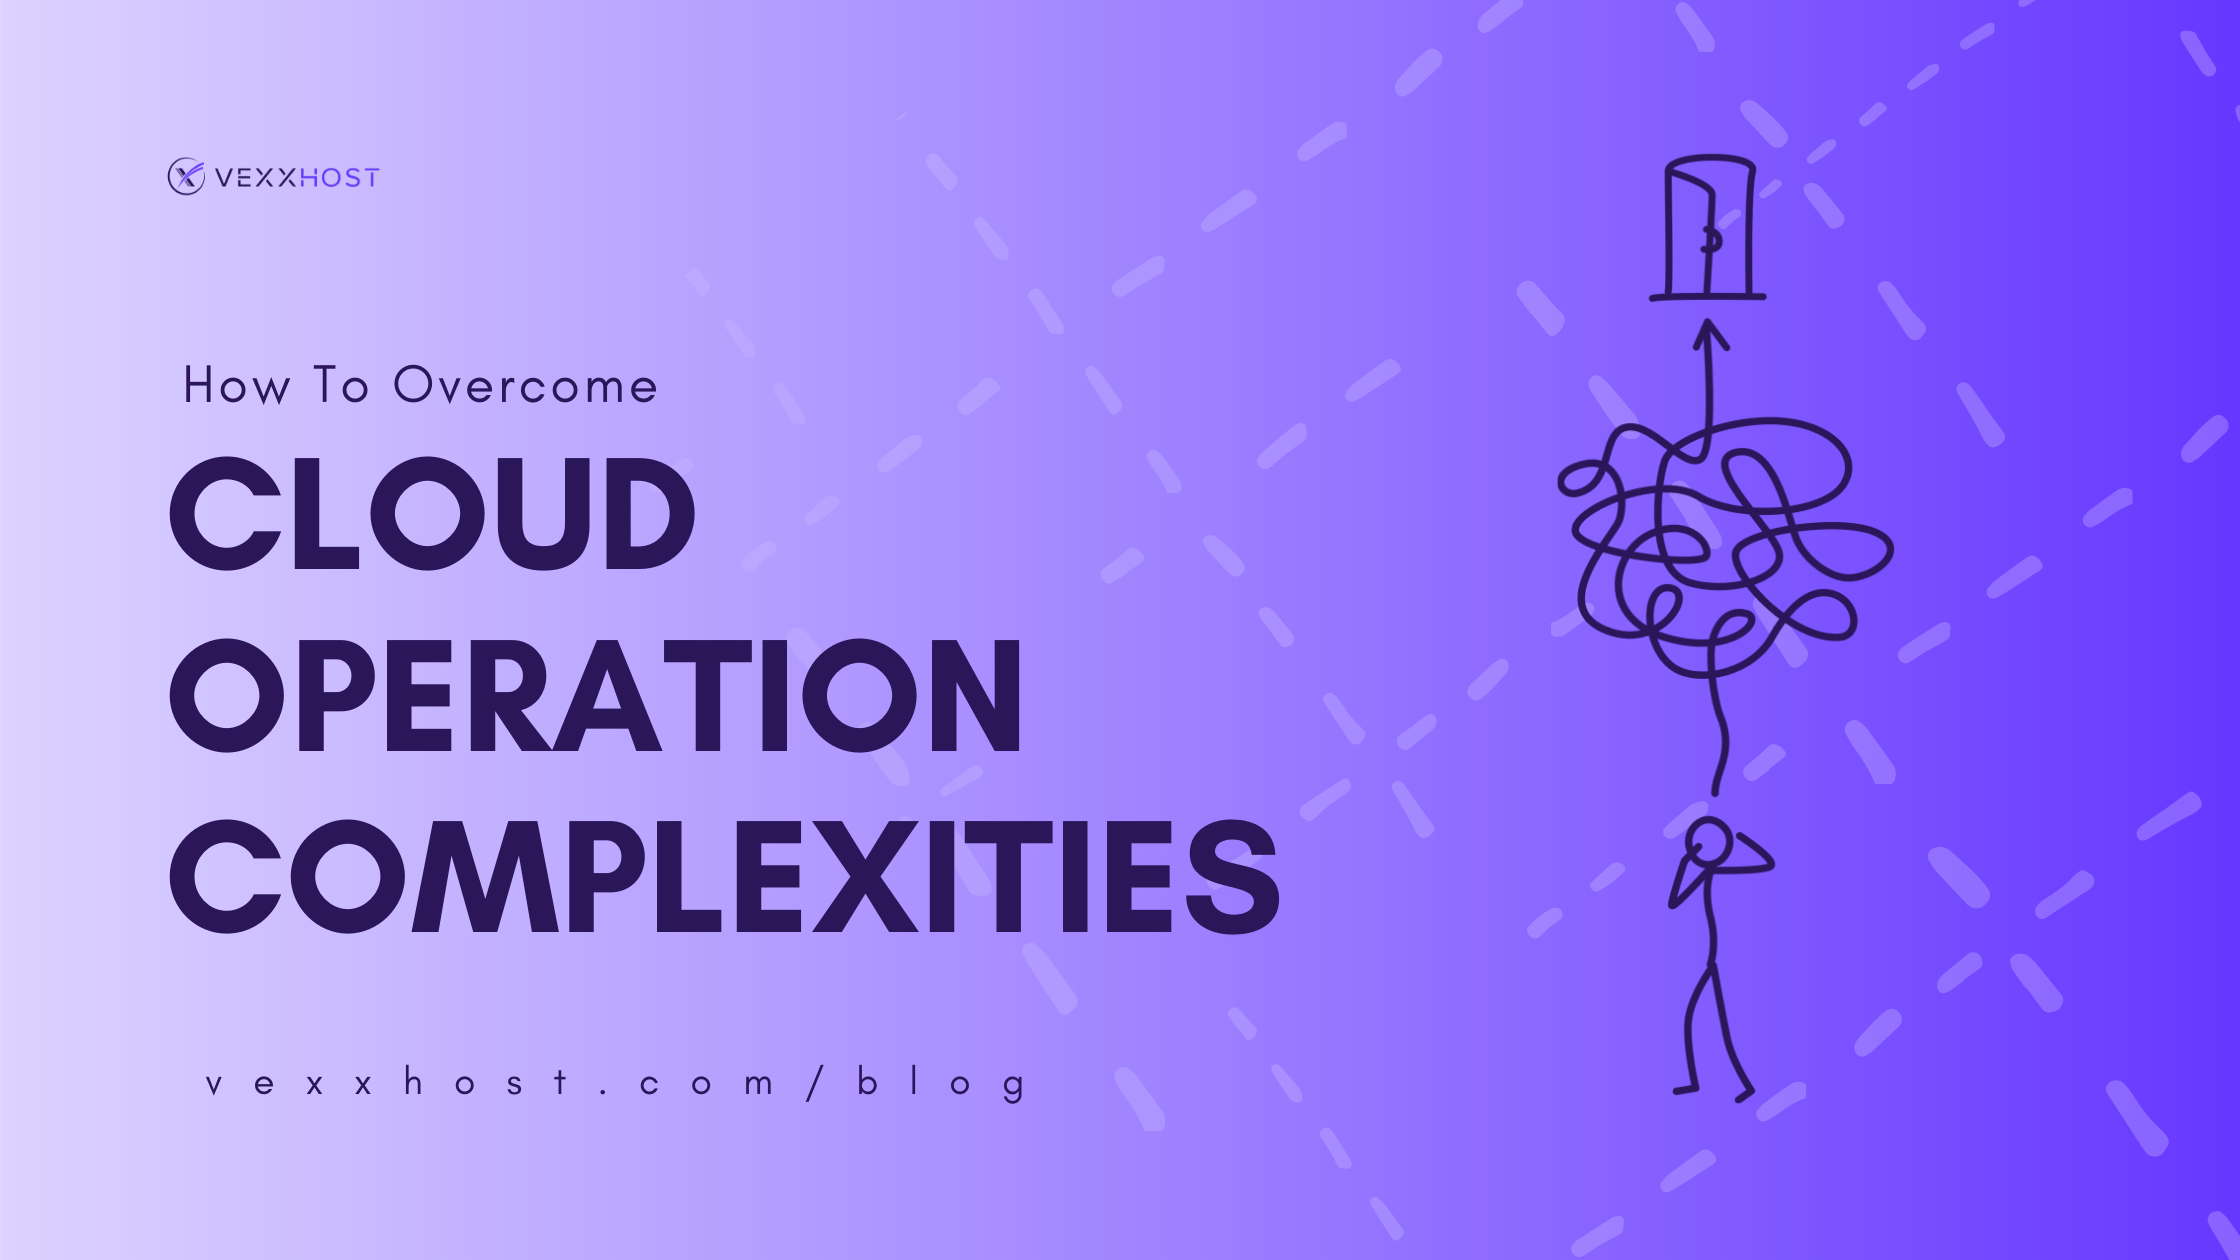 How to Overcome Cloud Operation Complexities